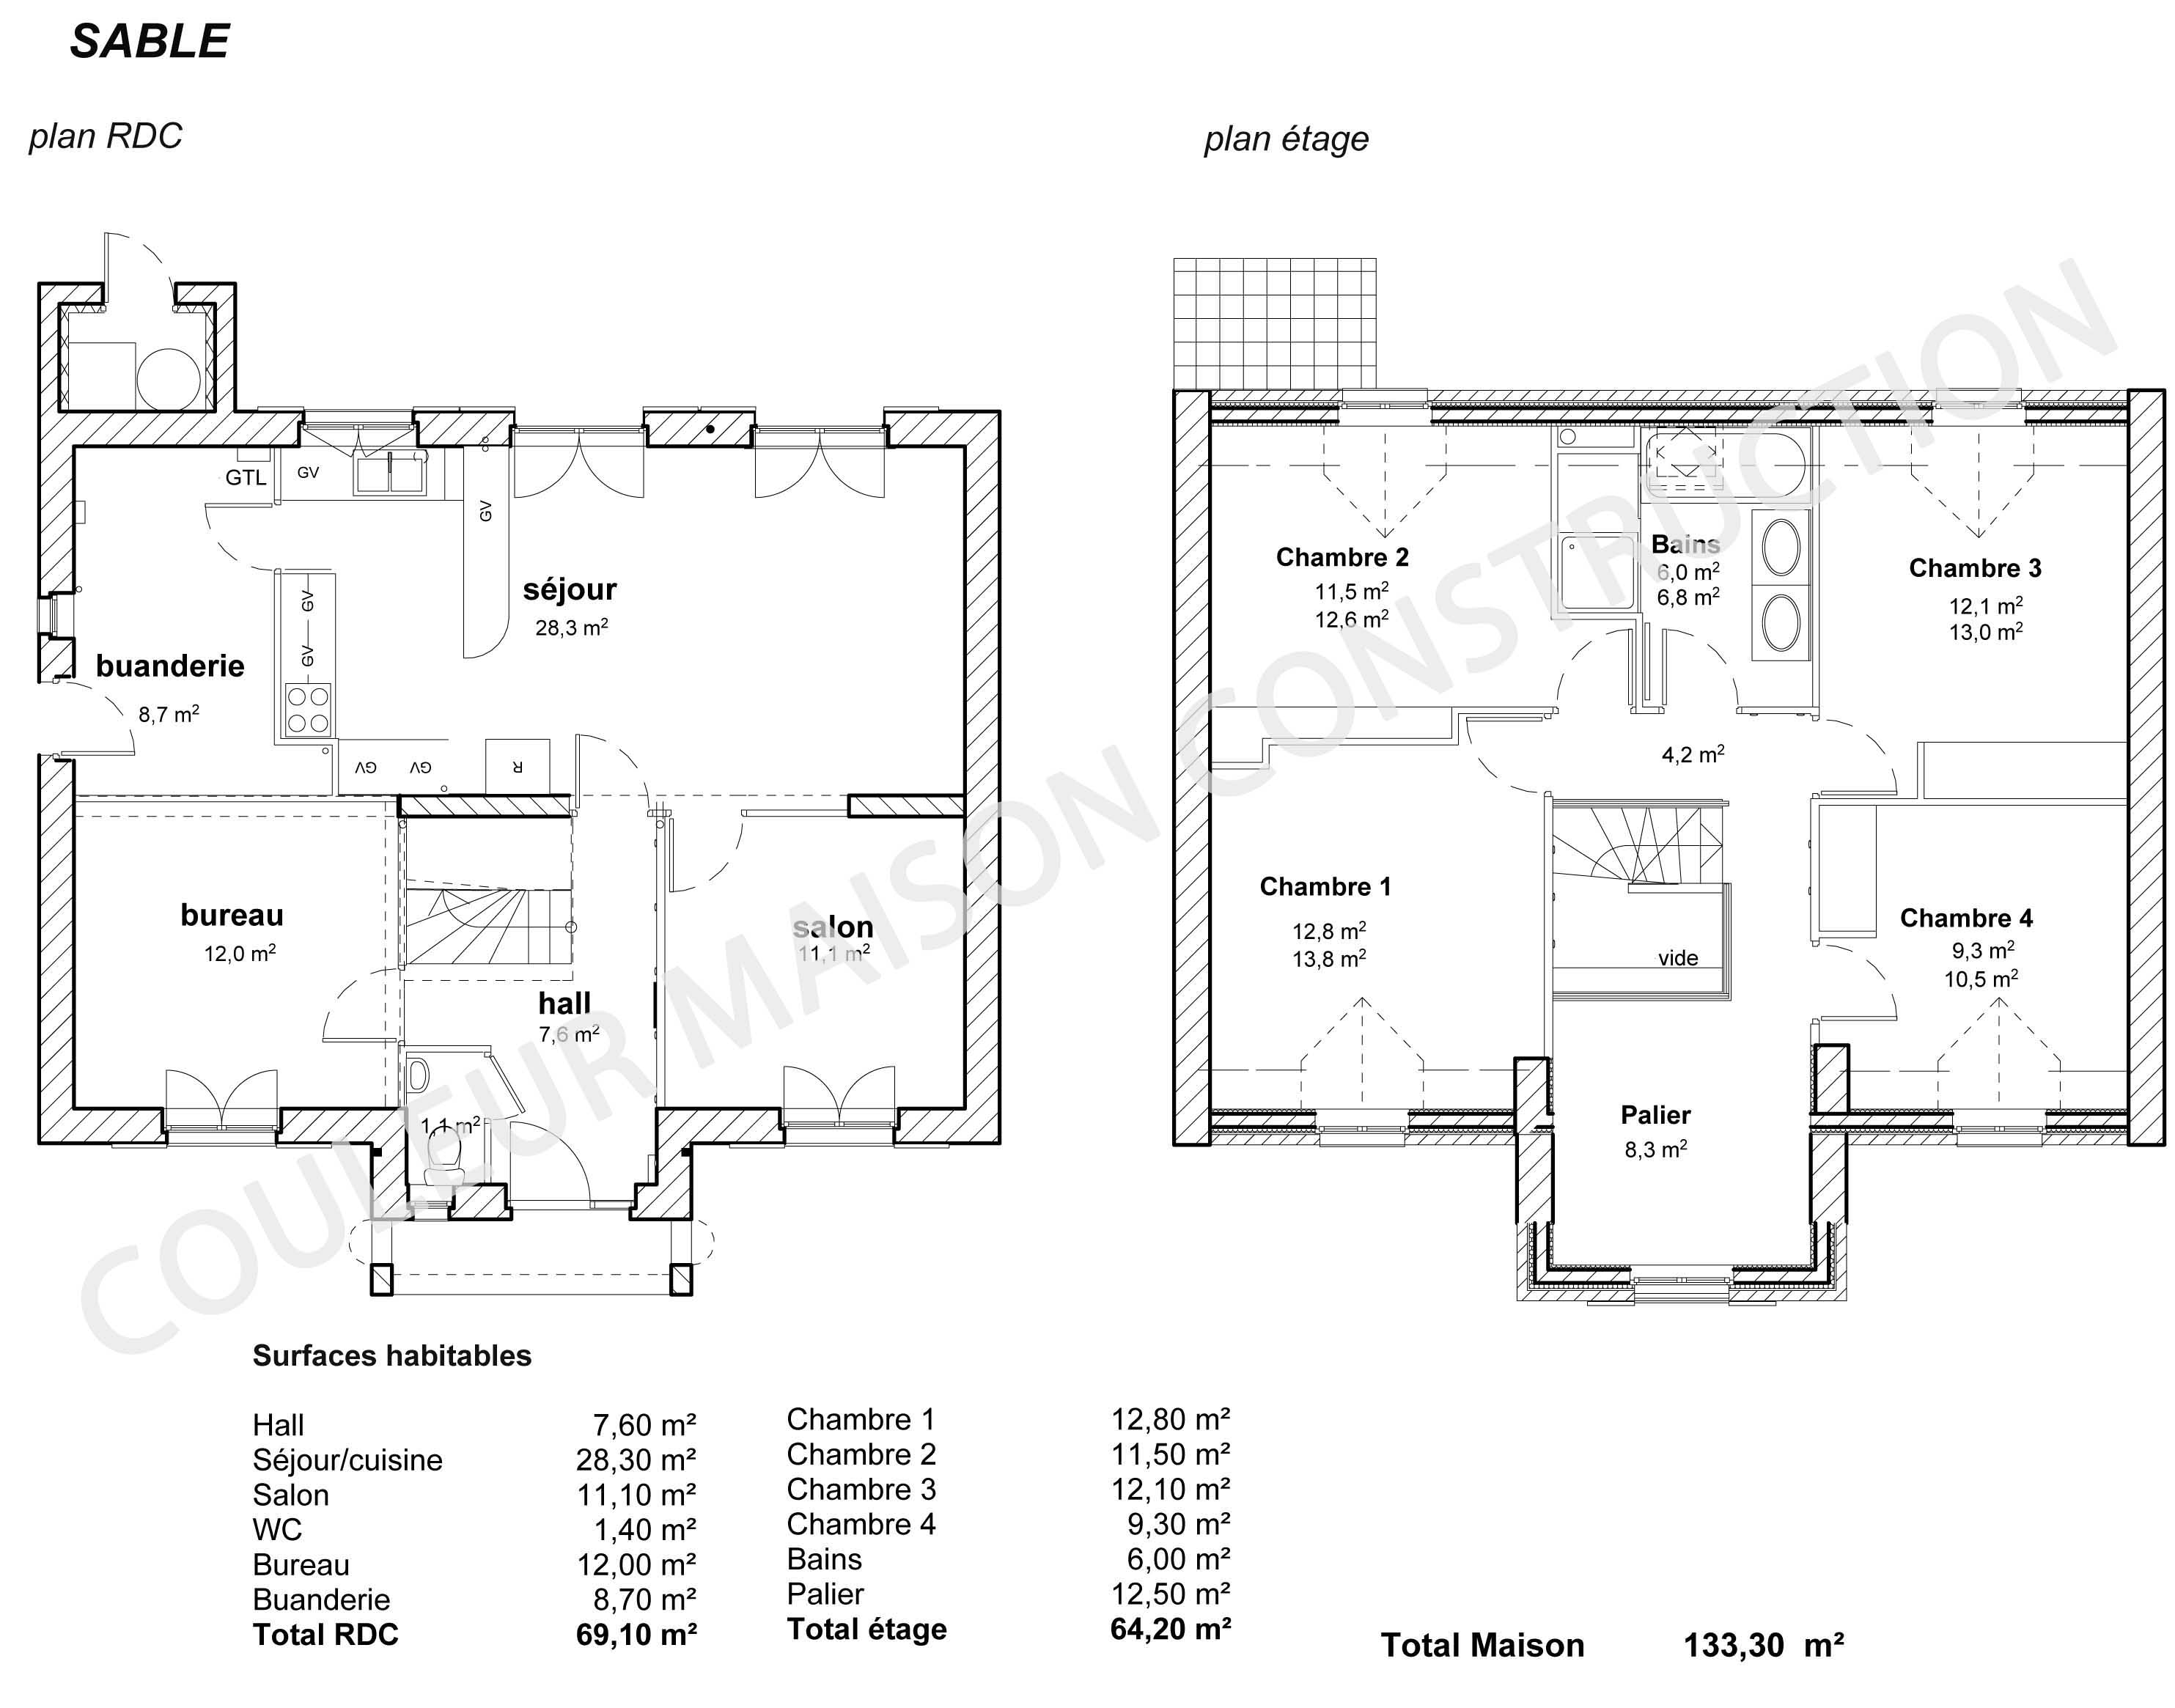 Exemple plan maison images for Exemple de plan de maison gratuit